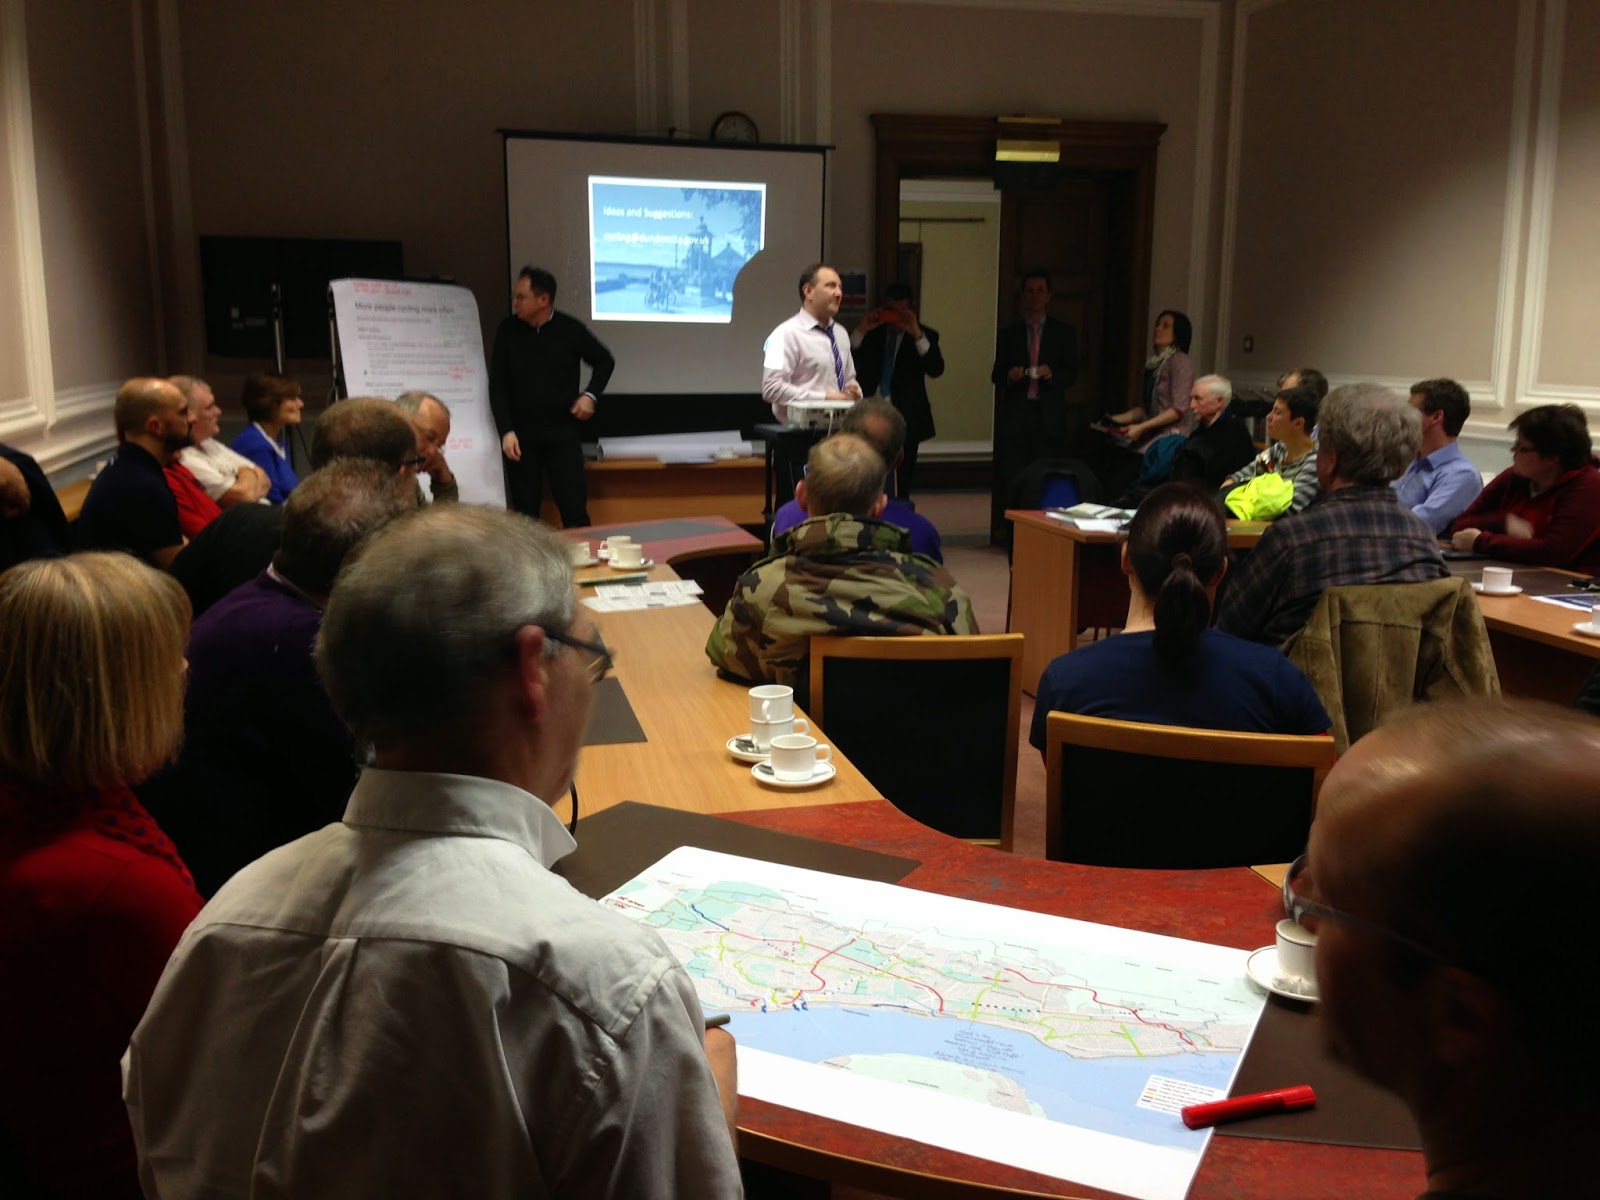 Cycling Engagement Event at Dundee City Council 09.03.2015